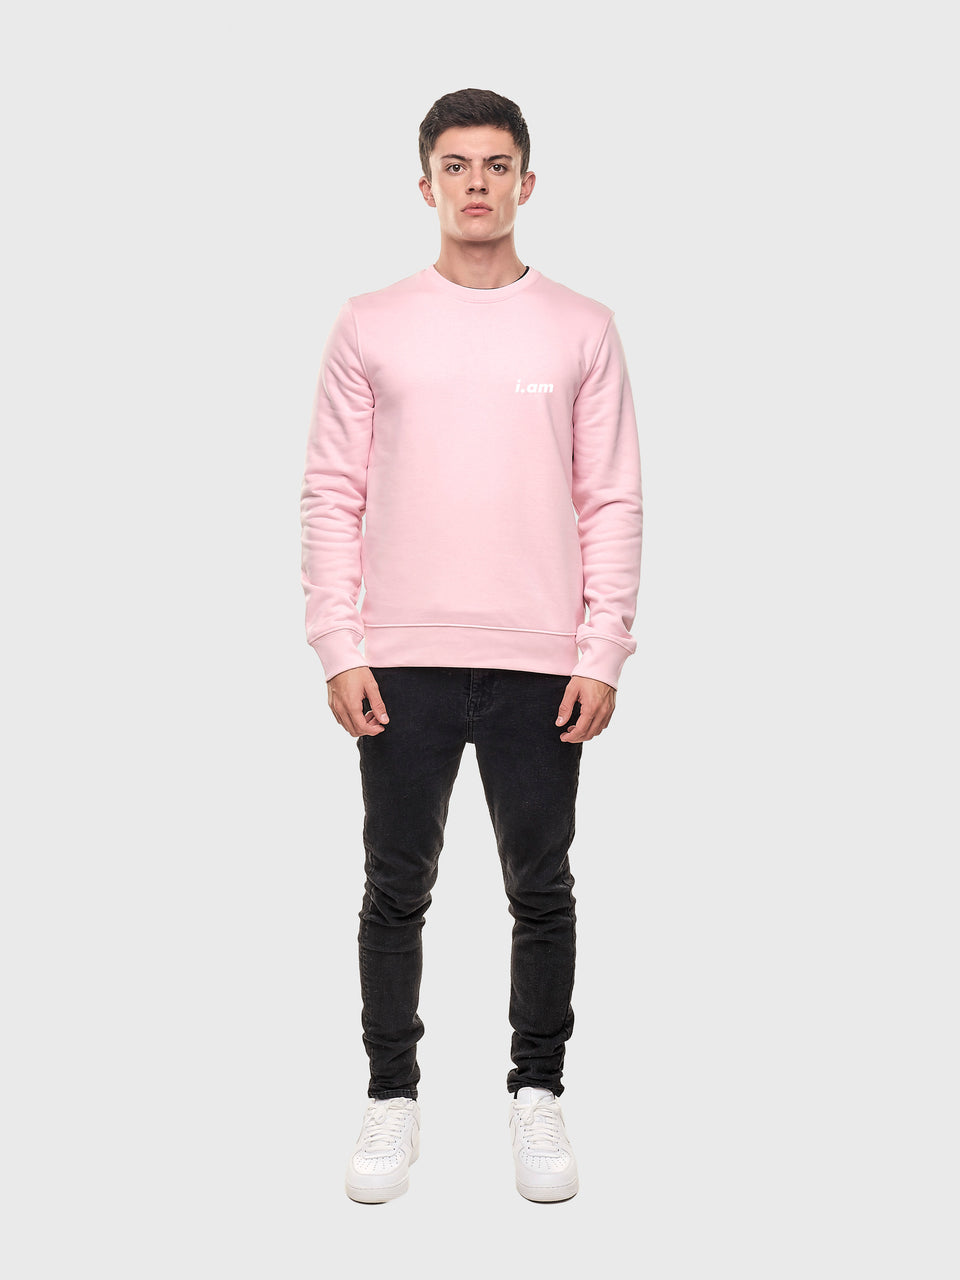 Not your baby - Pink - unisex sweatshirt